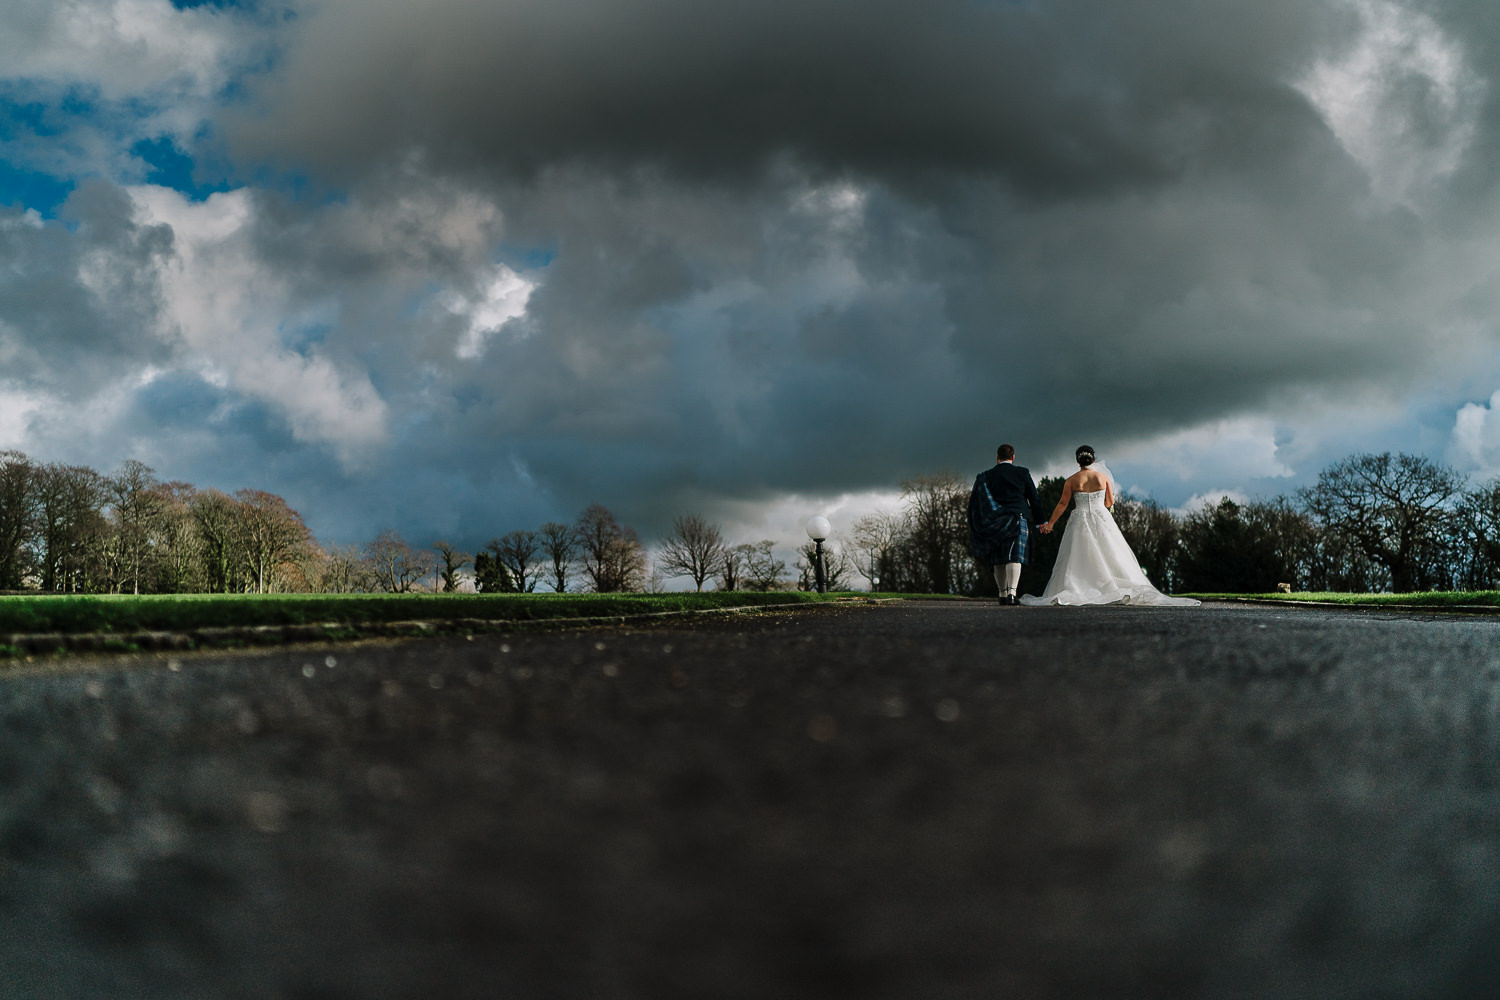 bride and groom walking in the sun with dark clouds